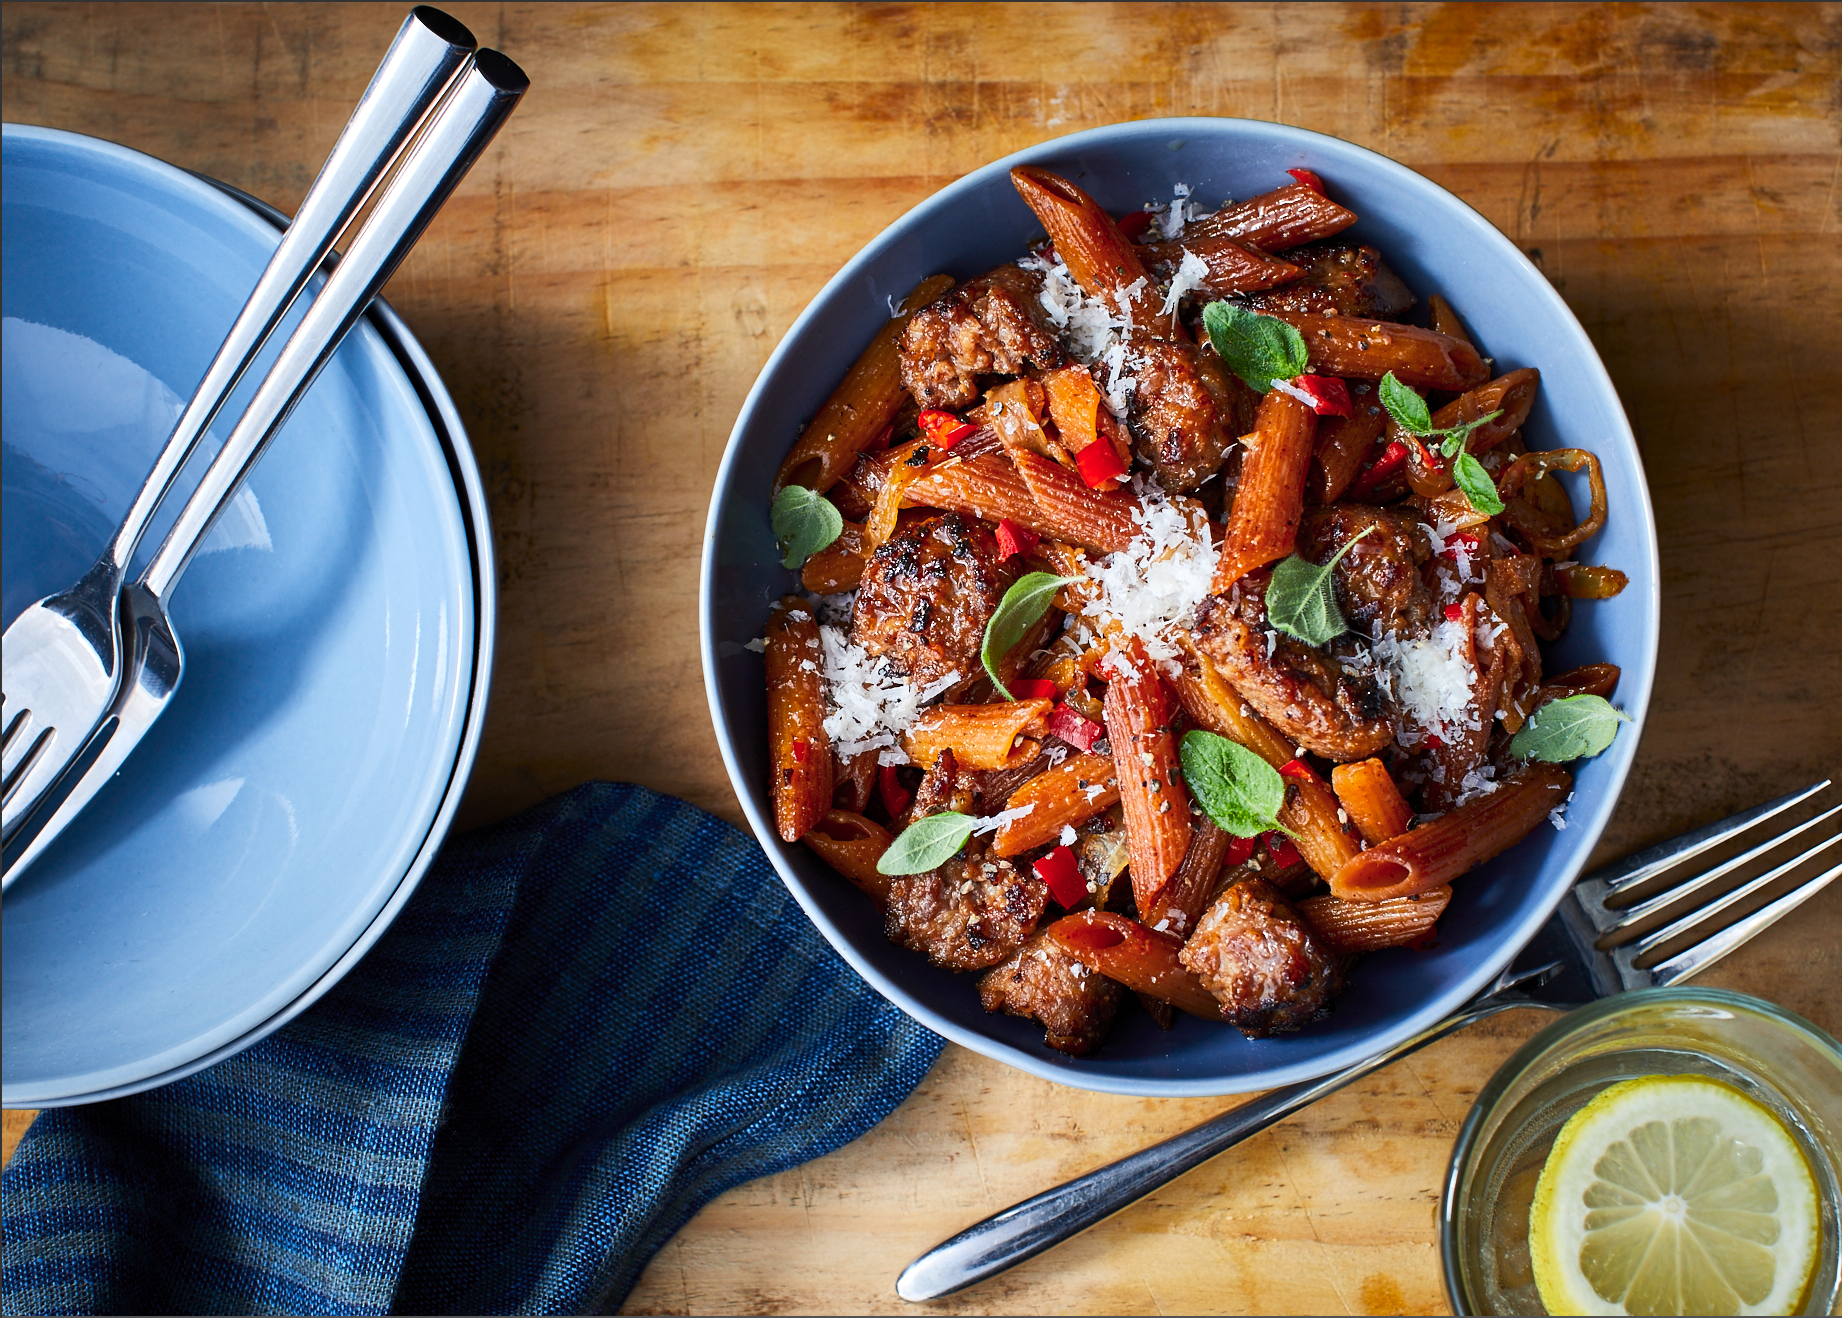 Skillet-Toasted Penne with Sausage